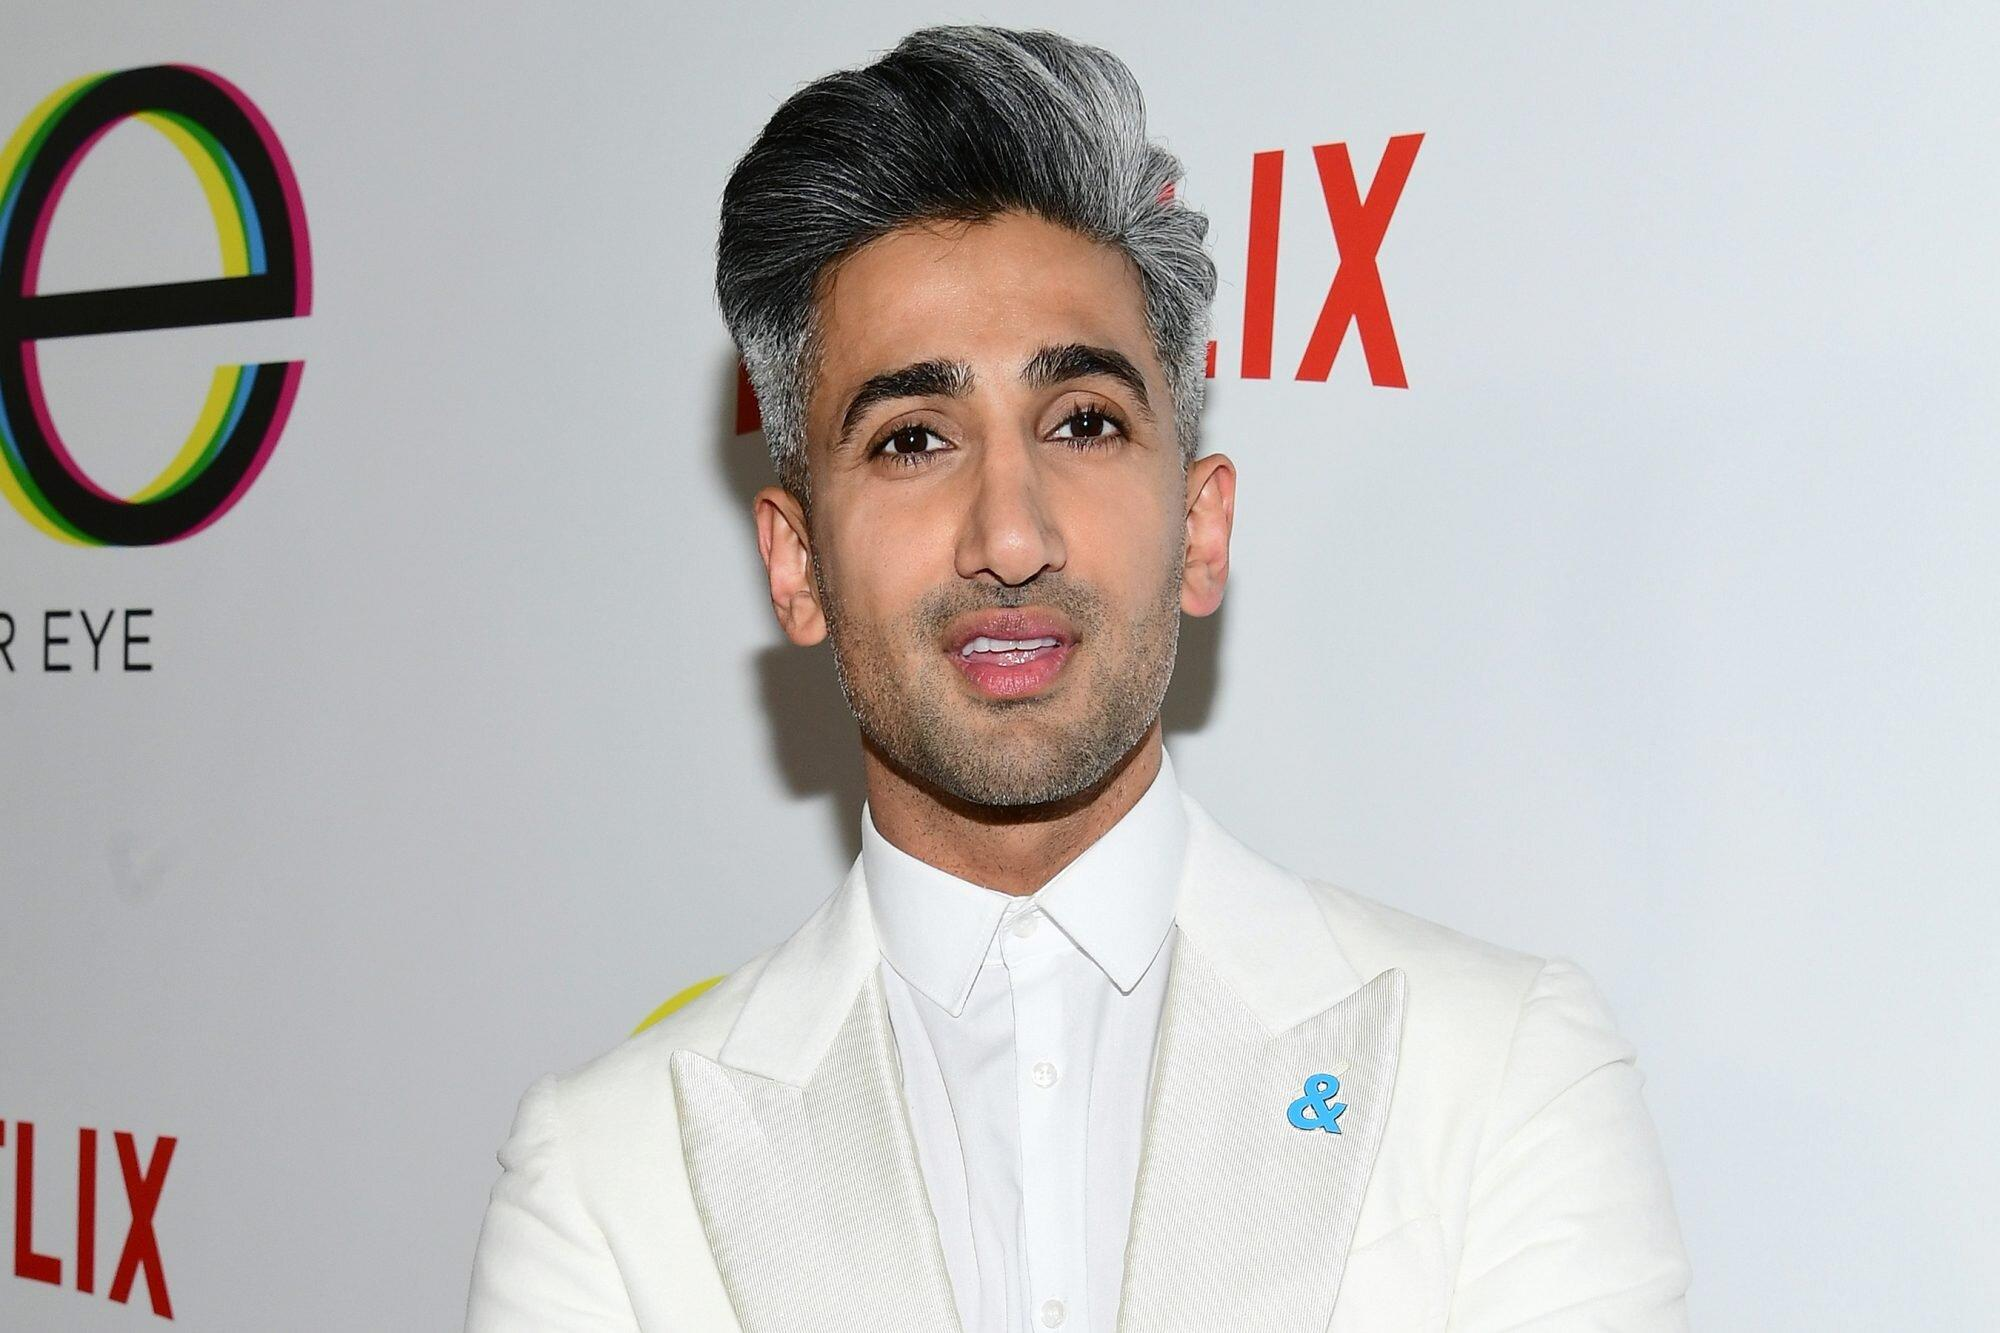 Queer Eye's Tan France Uses His 'Hellacious' Start in Business to Help Owners During the Pandemic